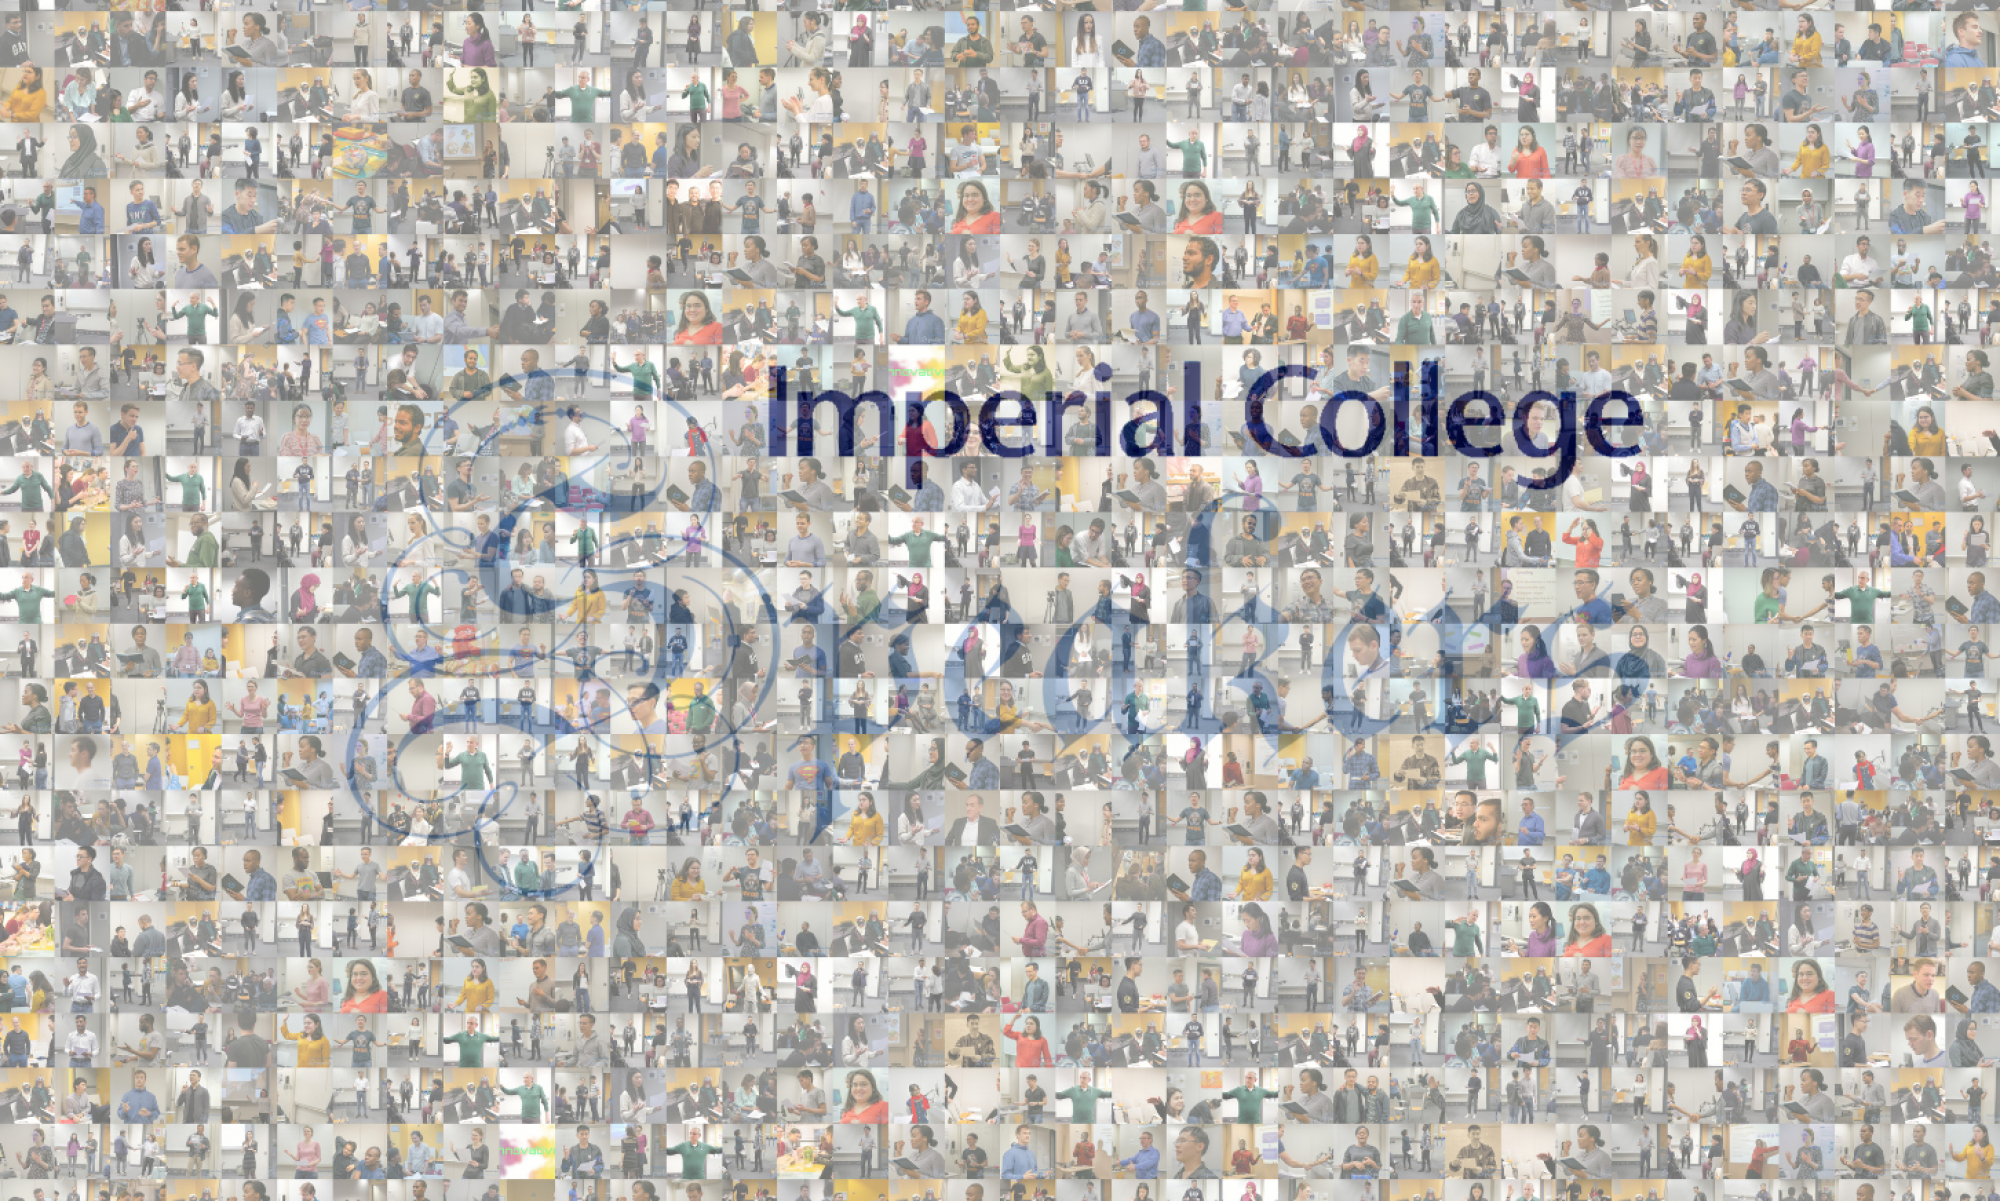 Imperial College Speakers